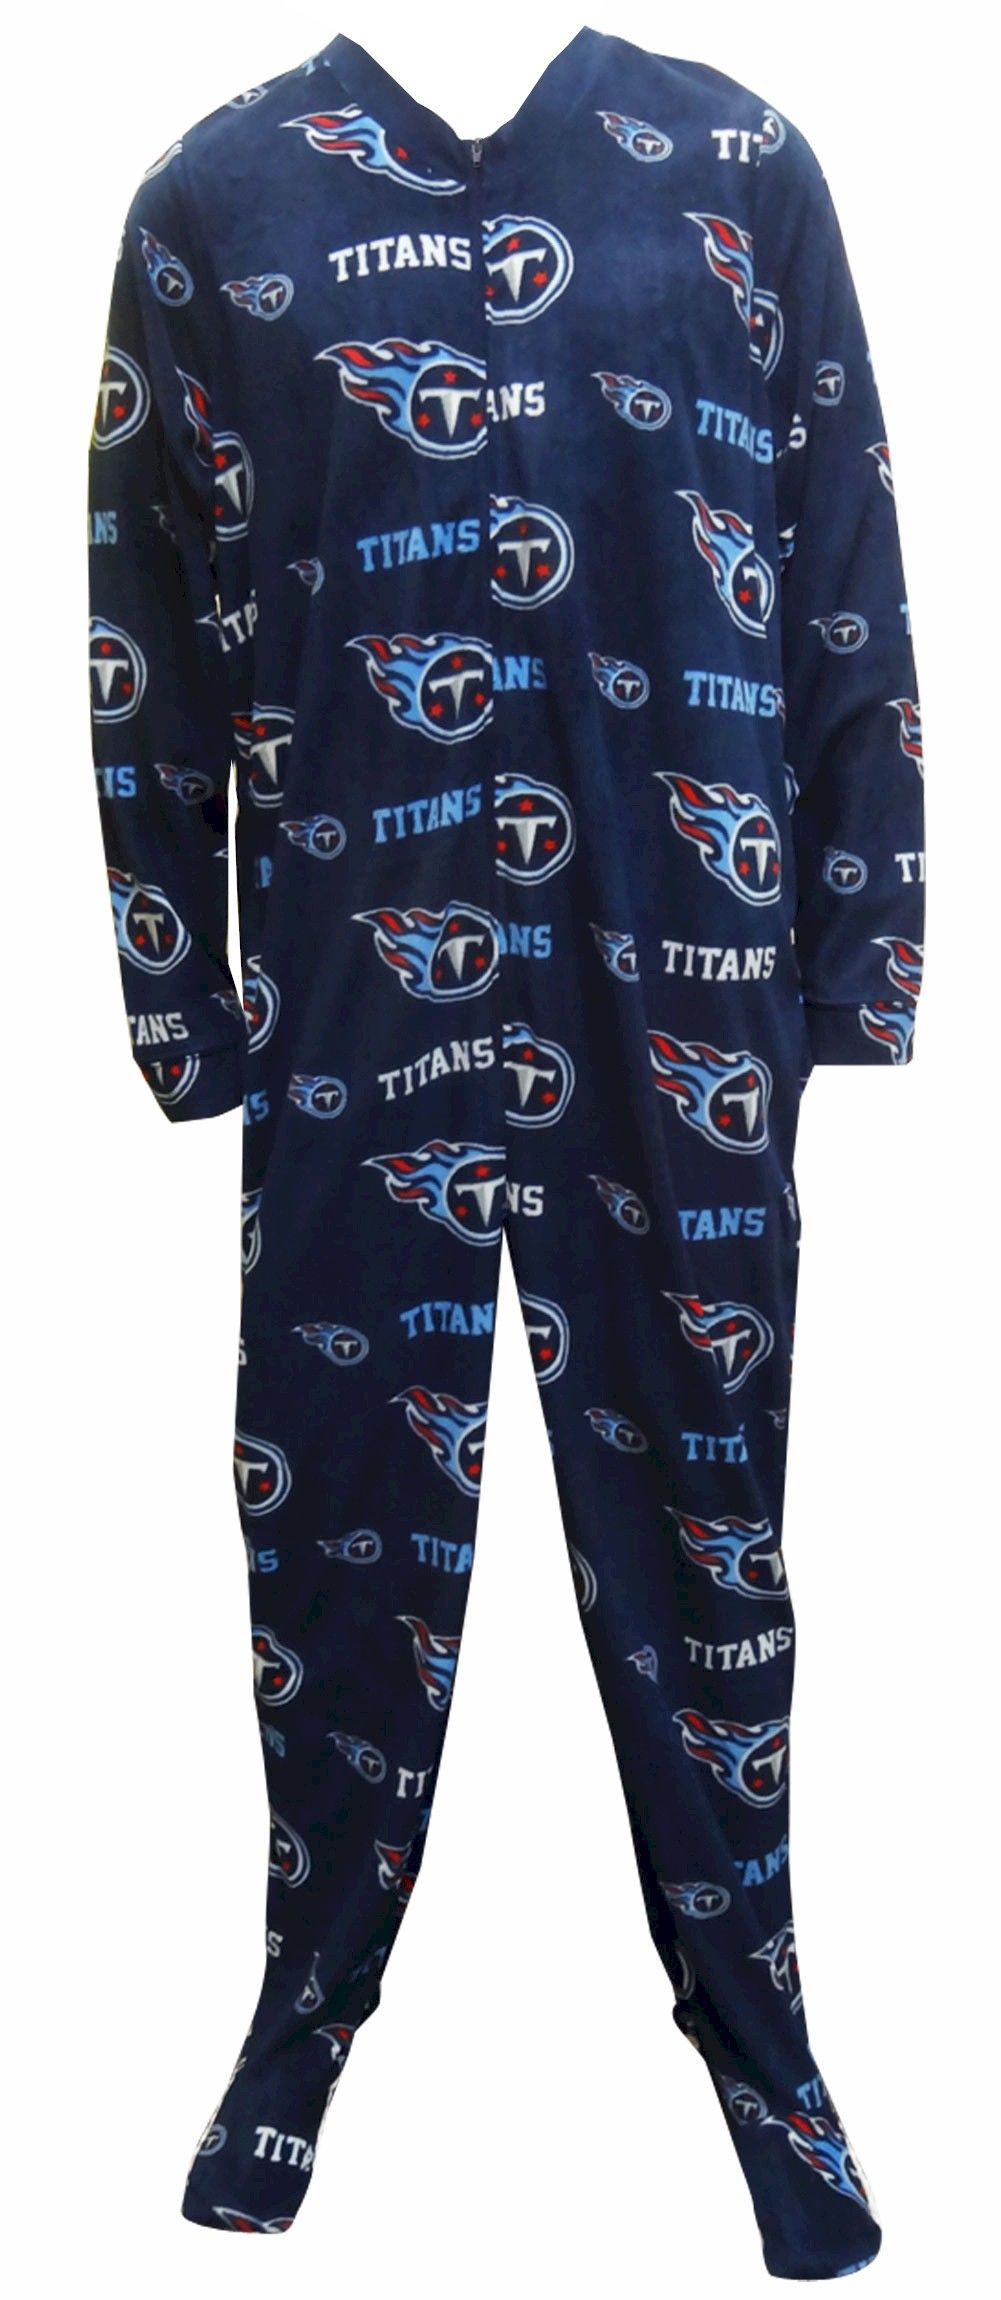 Tennessee Titans Guys Onesie Footie Pajama Show Your Team